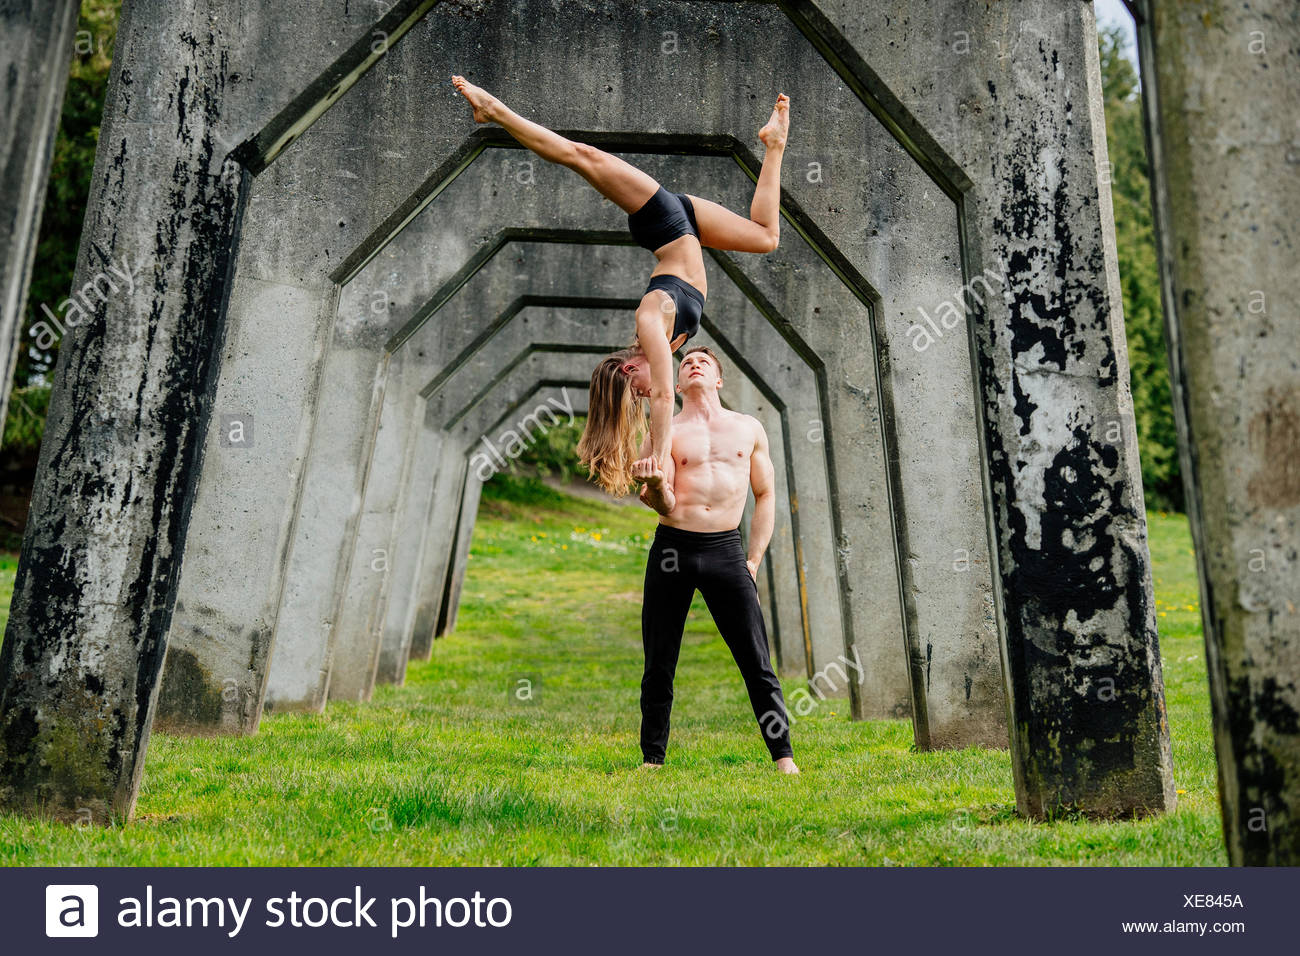 Young woman balancing on top of man hands, practicing yoga below concrete bridge - Stock Image